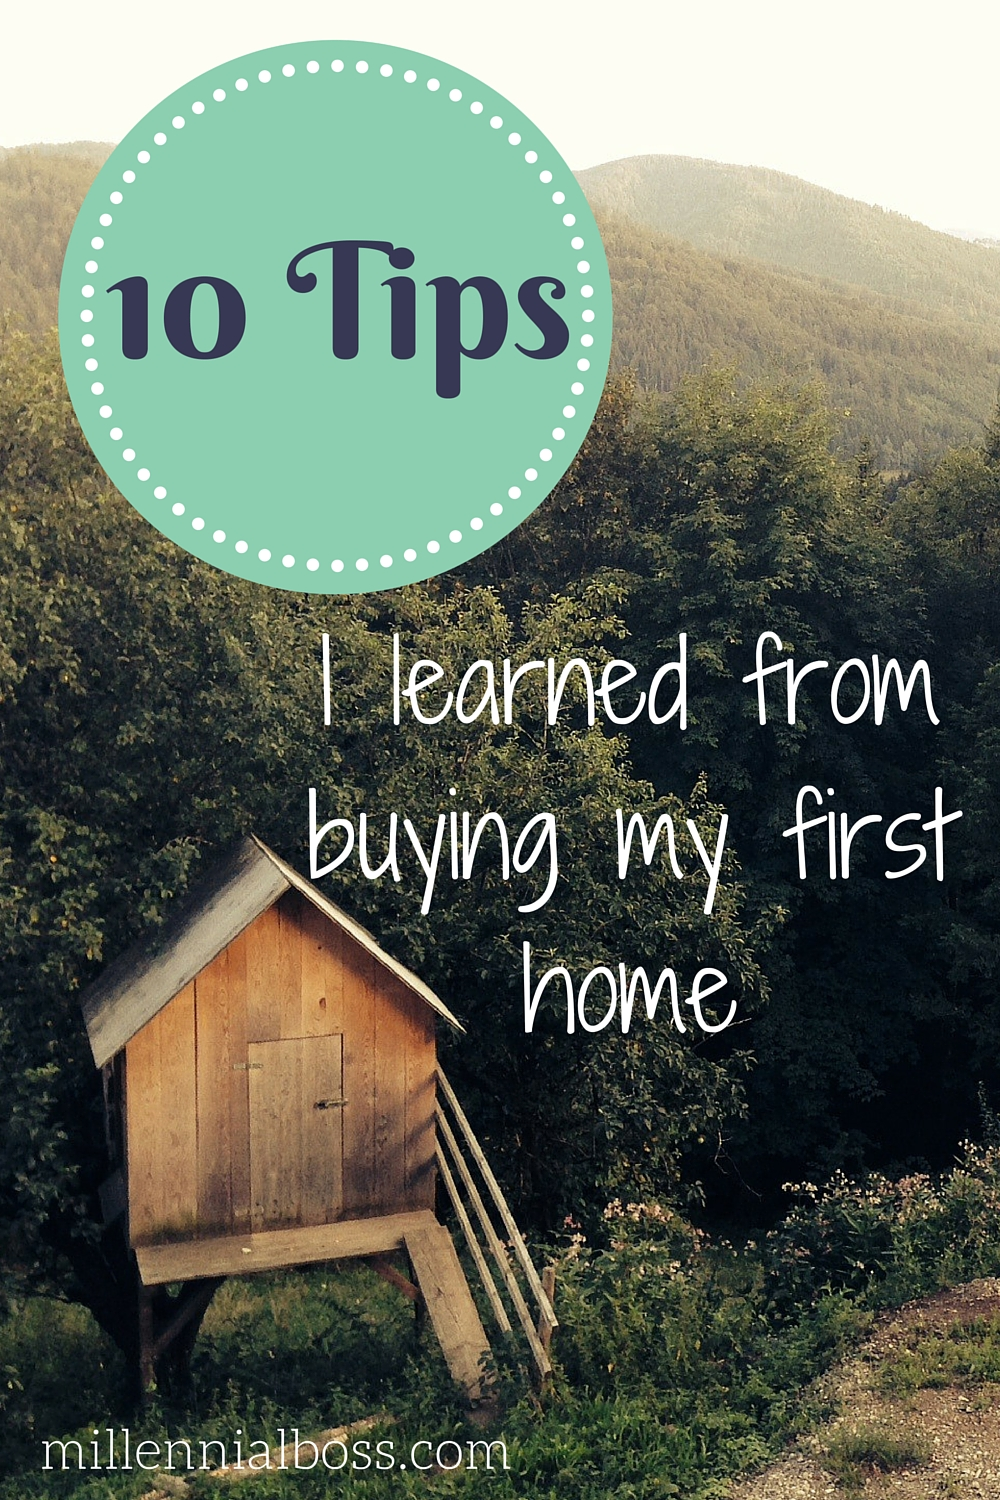 Lessons I learned from buying my first home